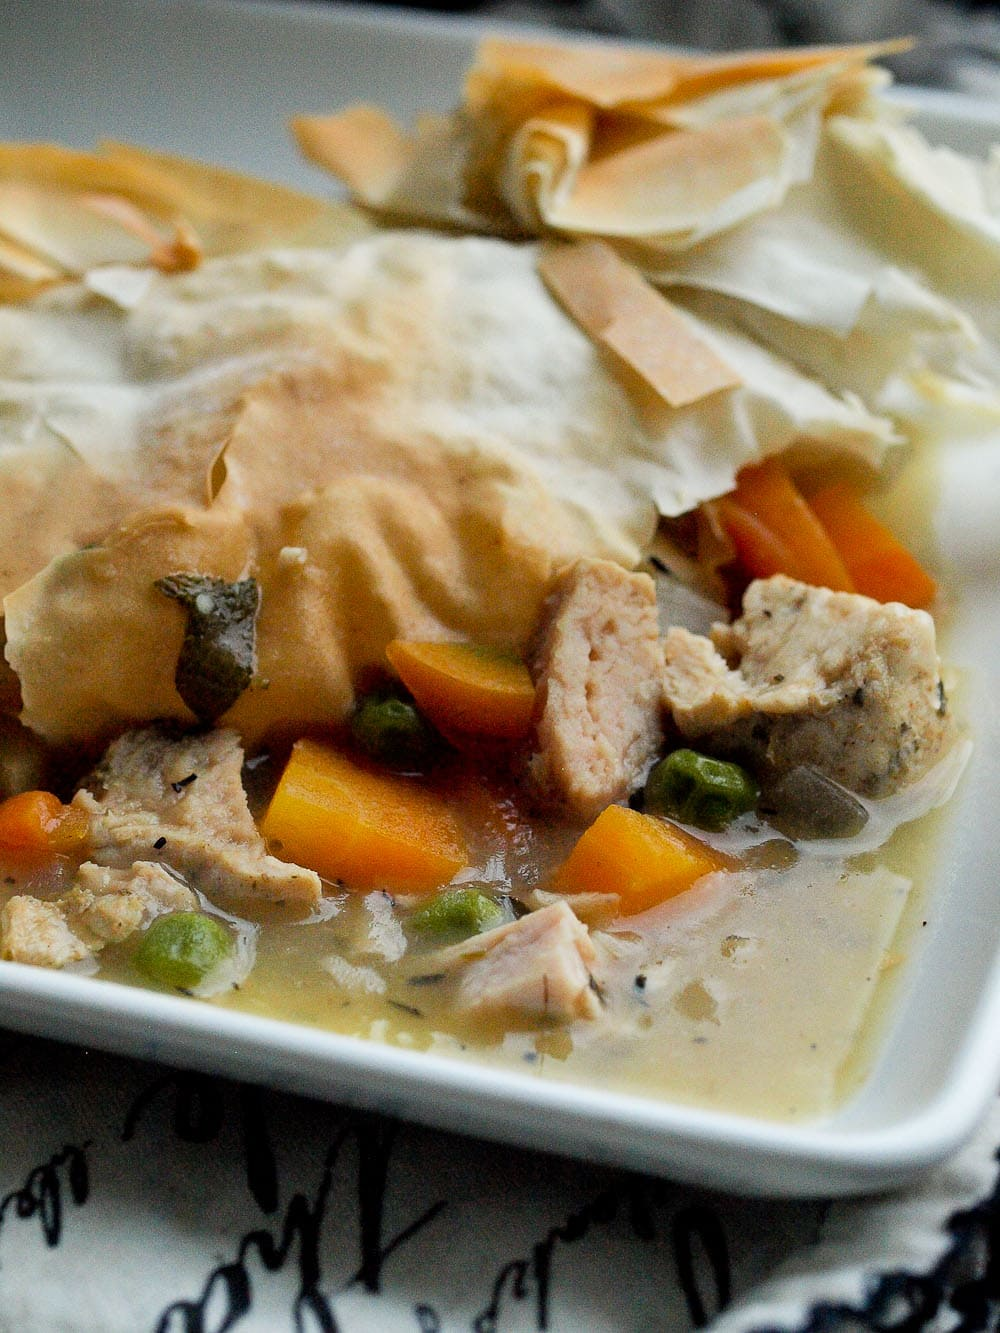 Exciting An Lightened Up Turkey Pot Pie Recipe That Is Lightened Up Turkey Or Ken Pot Pie Happy Healthy Mama 77 Easy Recipes Taco Casserole 77 Easy Recipes Crock Pot nice food 77 Easy Recipes